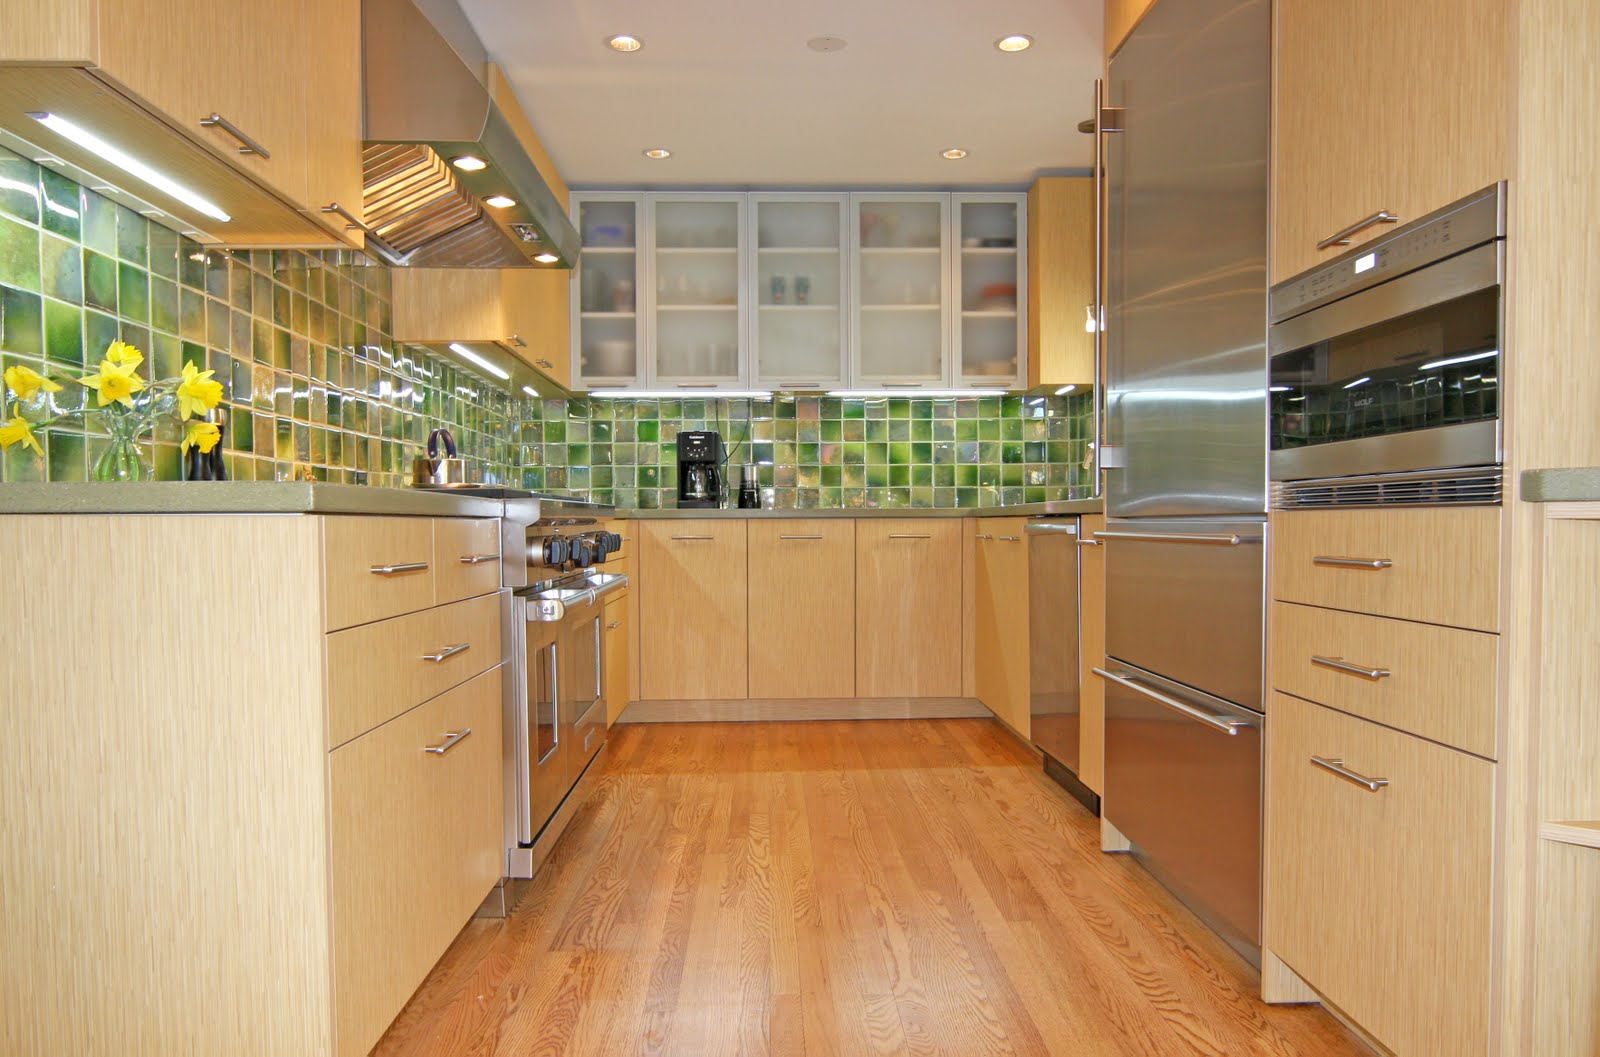 3ccchicago green remodel gourmet galley kitchen remodel for Pictures of galley kitchen remodels